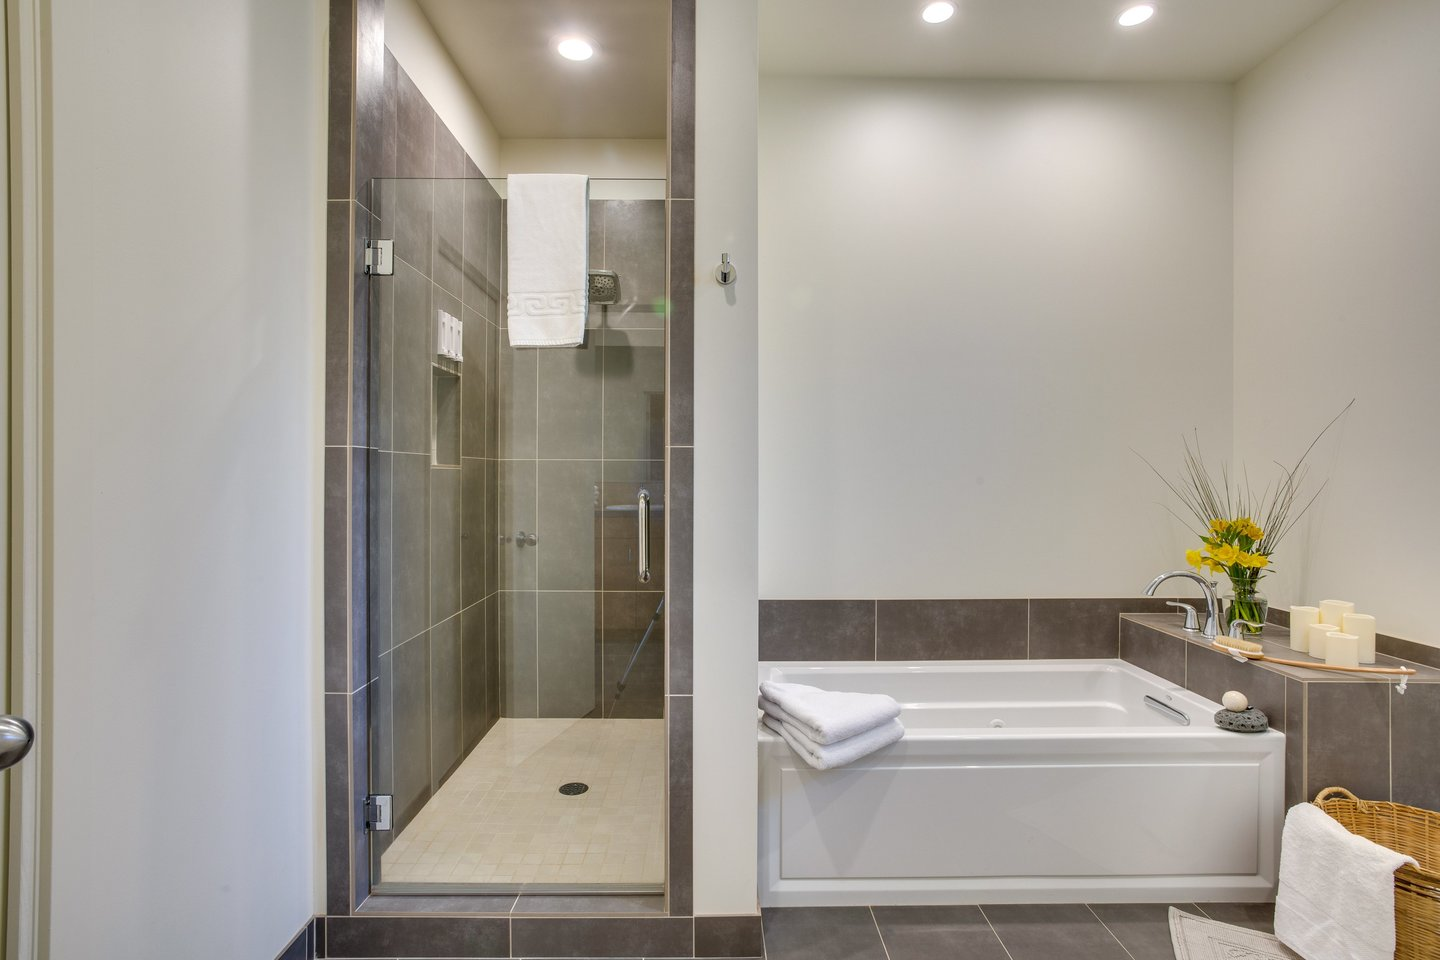 Relax in the luxury bath or shower.